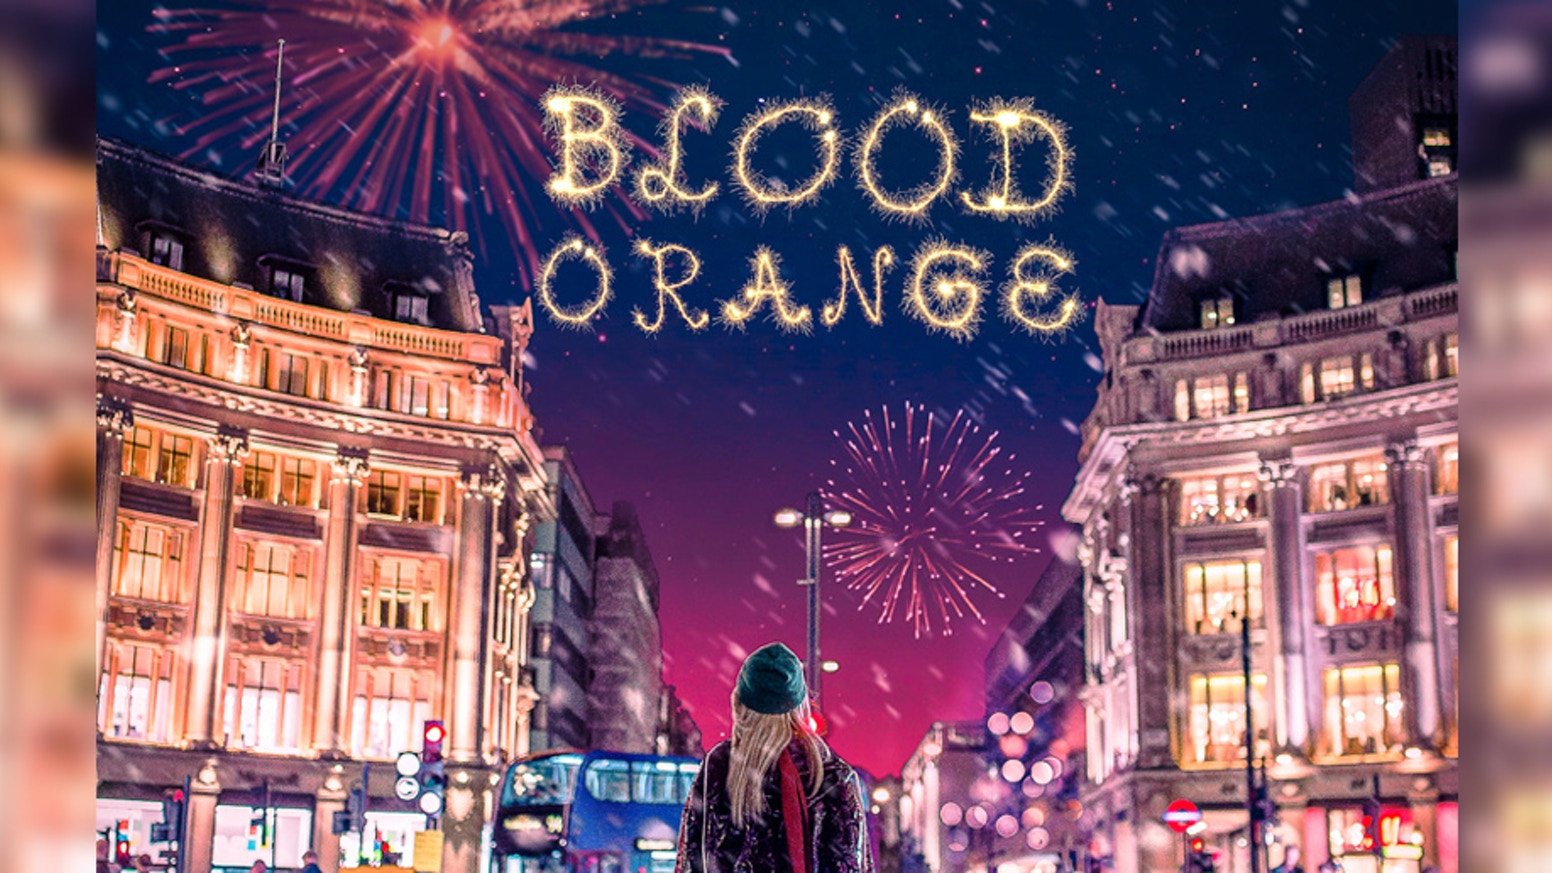 BLOOD ORANGE is a new one woman play, exploring themes of love, loss and childhood trauma through the eyes of a junior doctor in A&E